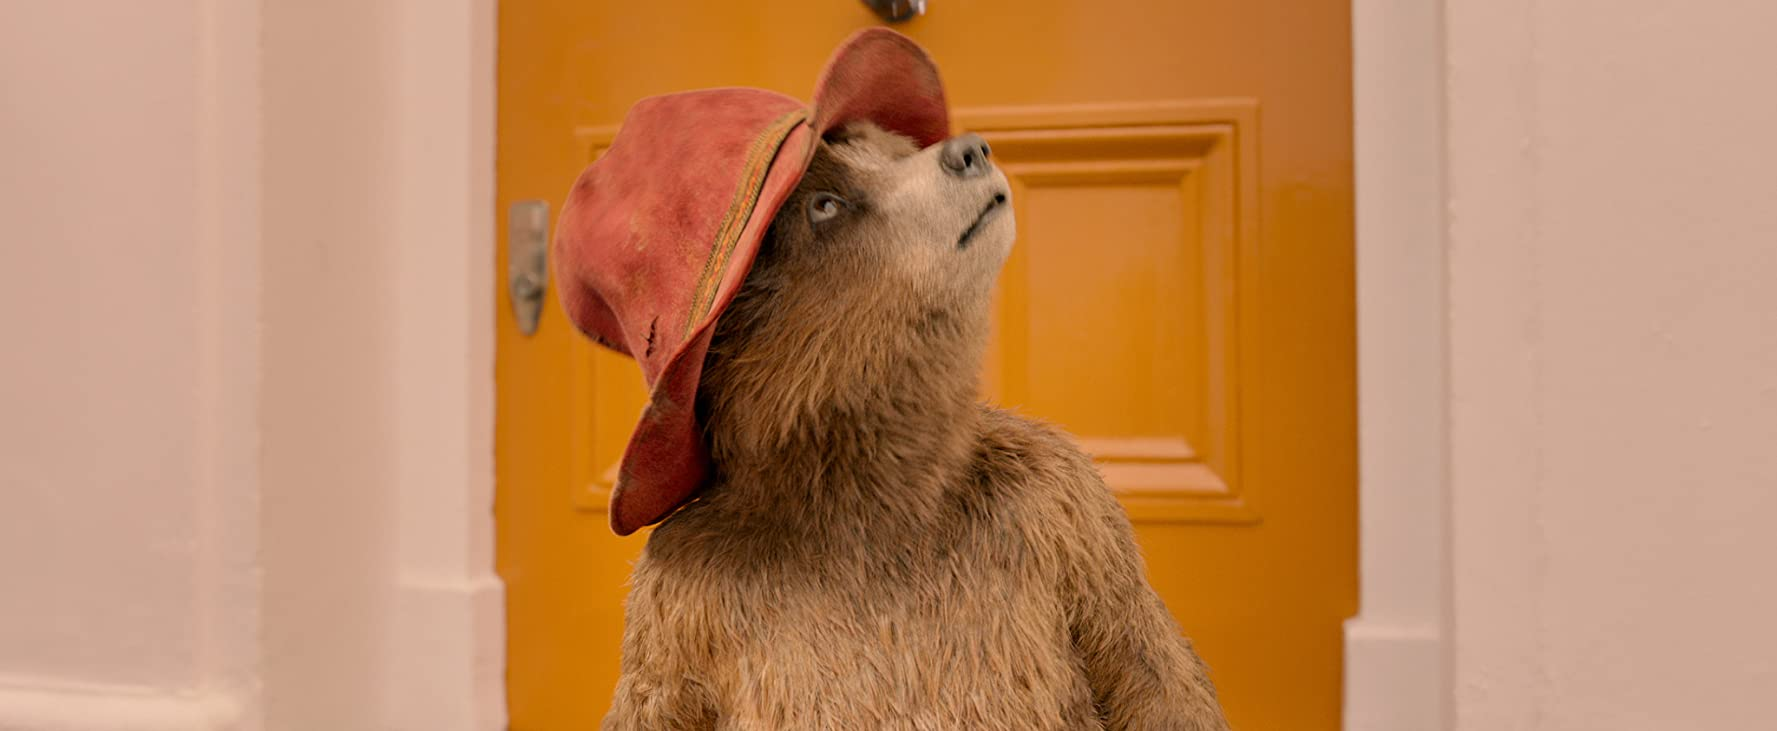 Ben Whishaw in Paddington 2 (2017)